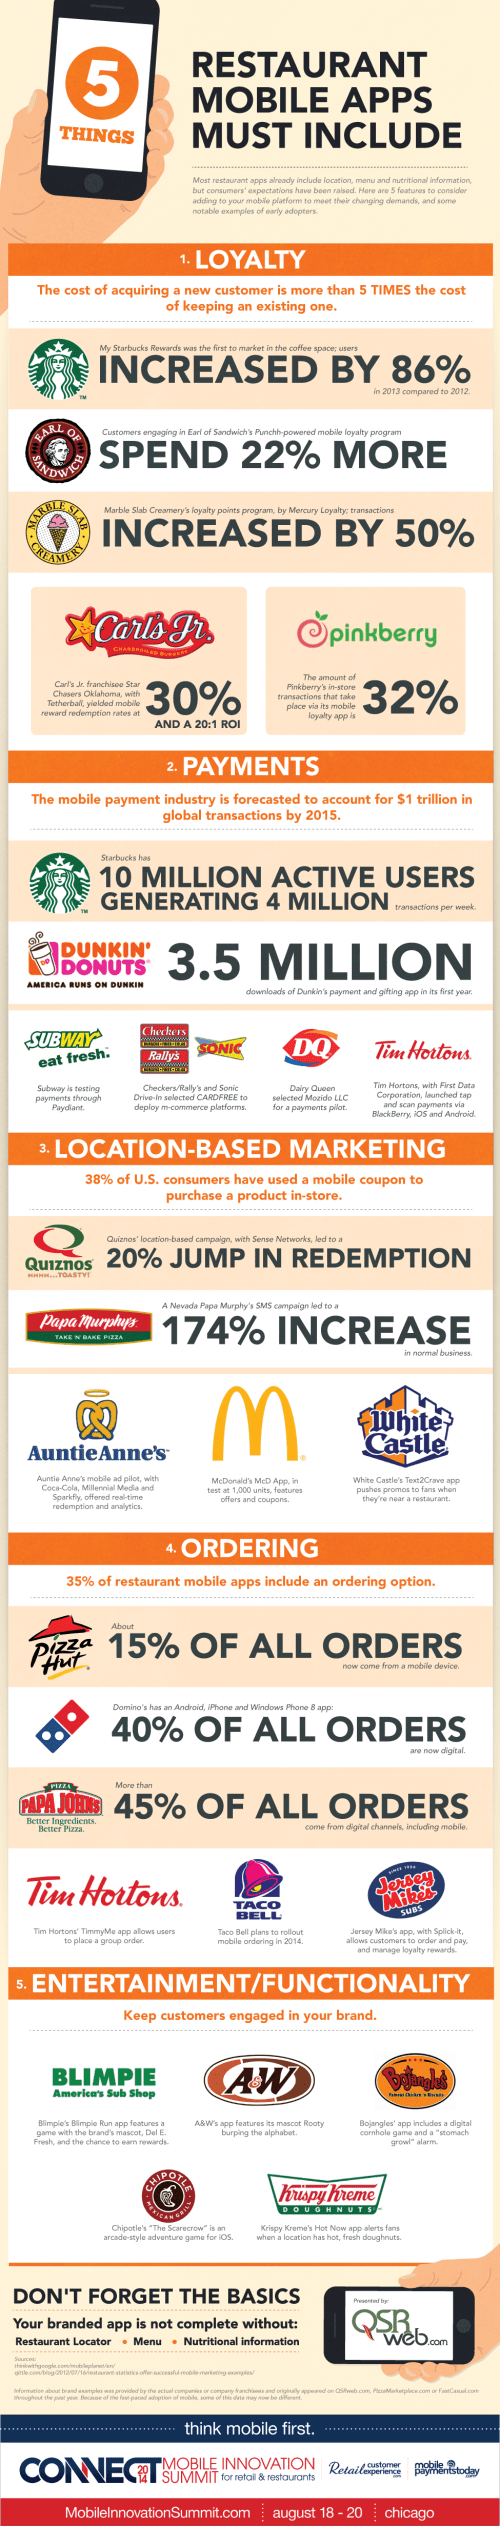 5 Things Restaurant Mobile Apps Must Include [infographic]